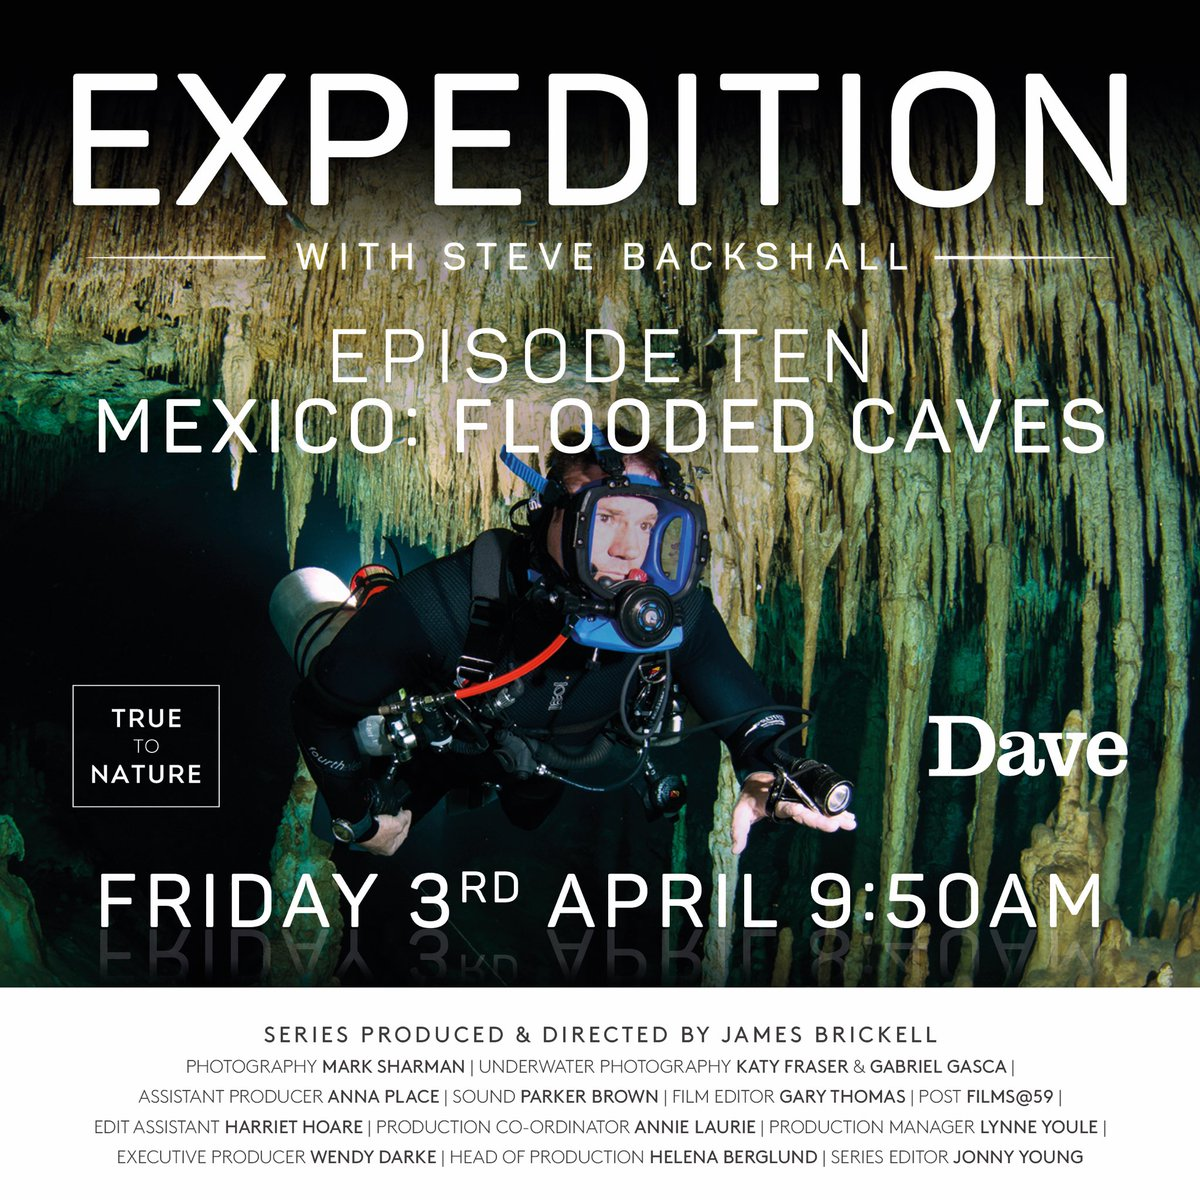 LIVE NOW: EXPEDITION with @SteveBackshall on @davechannel https://uktvplay.uktv.co.uk/watch-live #EXPEDITION_withSteveBackshall @FremantleHQ #cavediving #yucatan #expedition #mexico #cenotesmexico #exploration #adventure